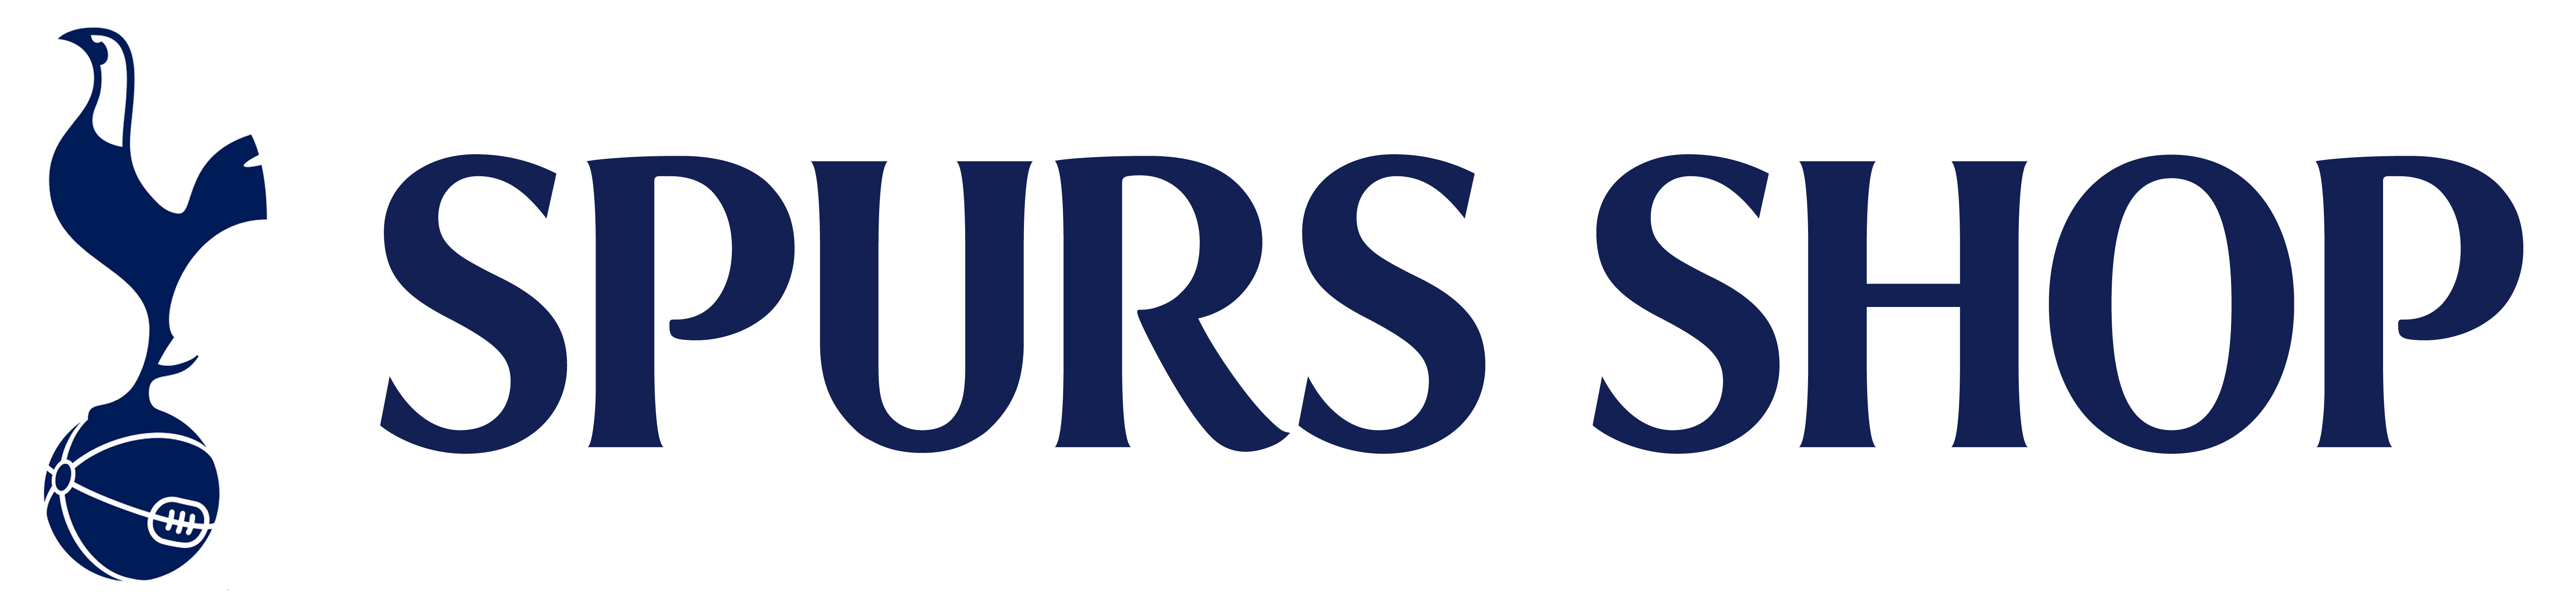 Spurs Shop Logo